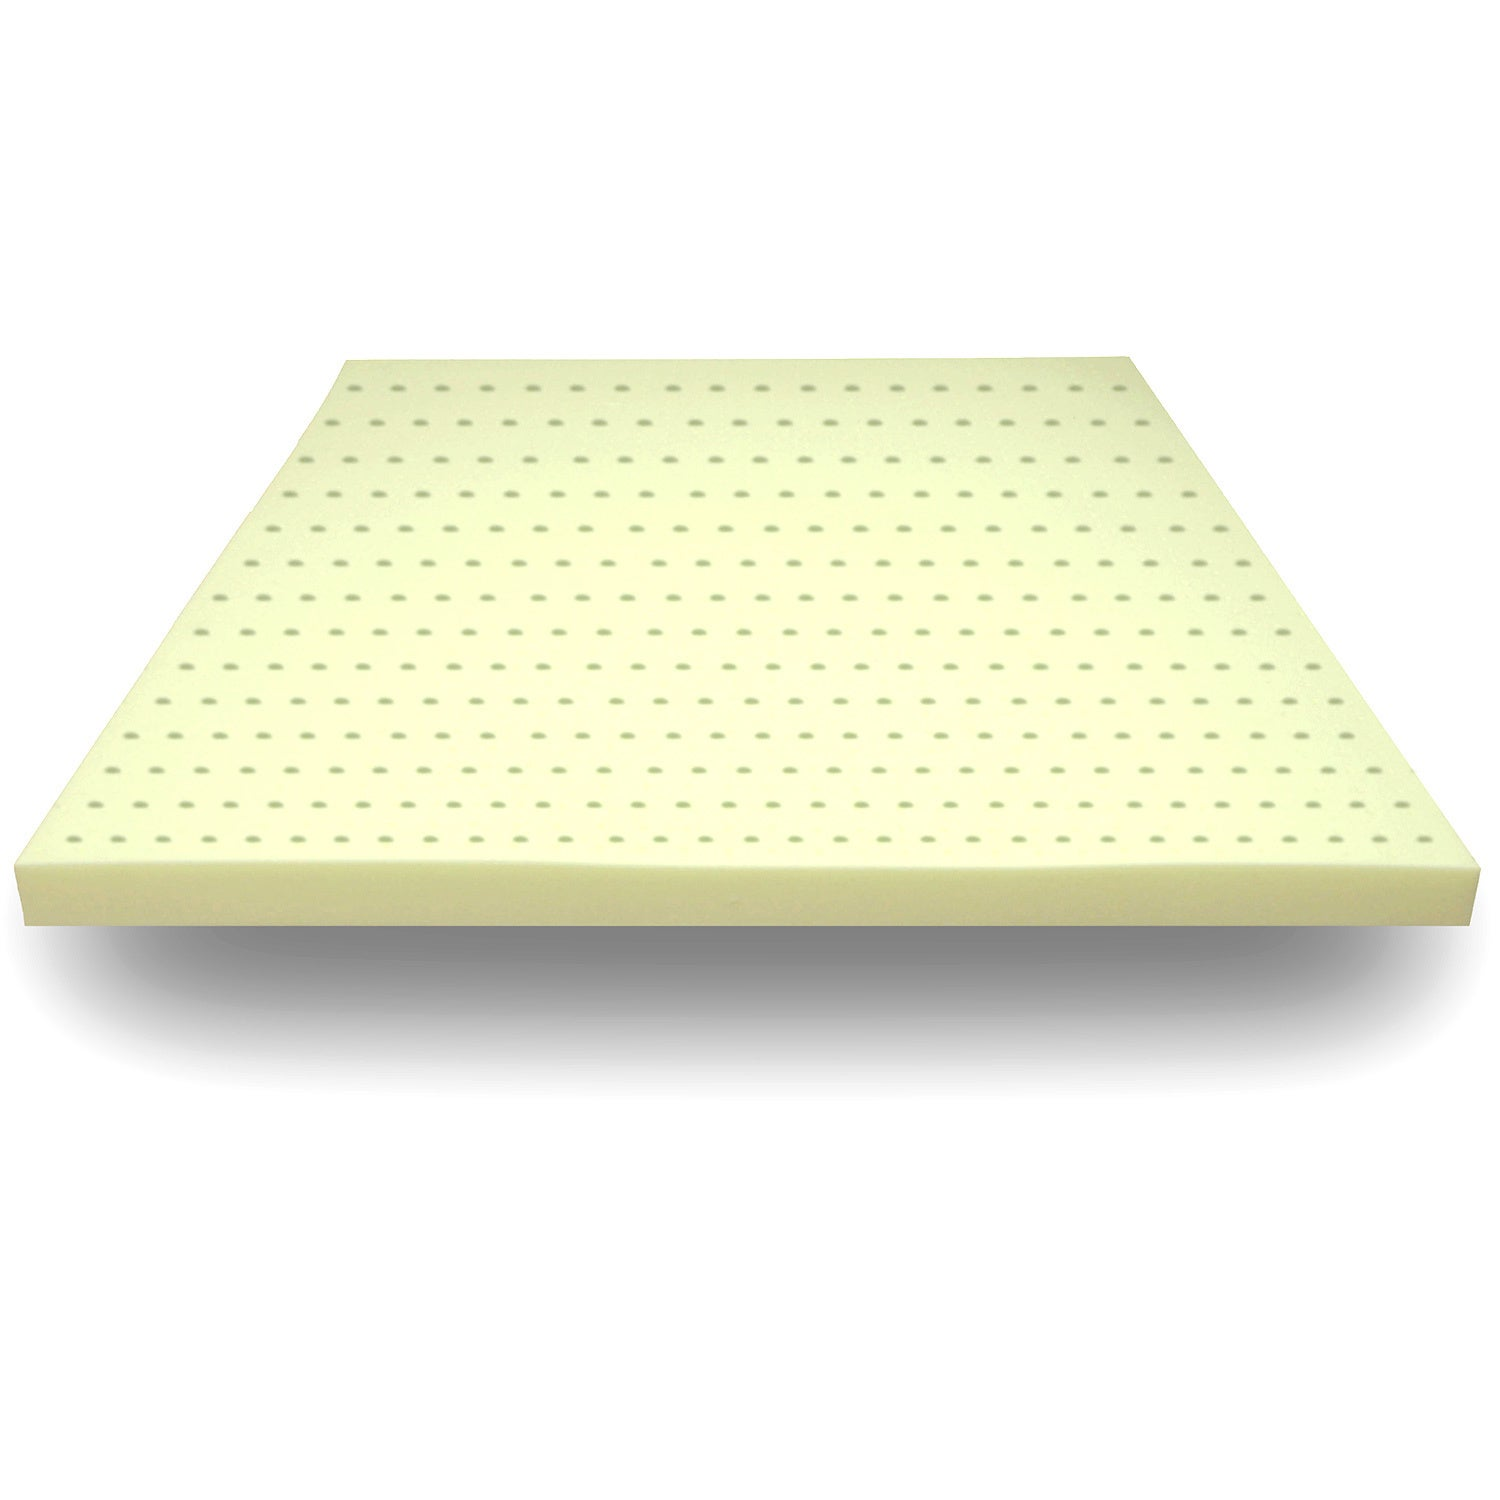 PostureLoft Haven 3-inch Ventilated Memory Foam Mattress ...